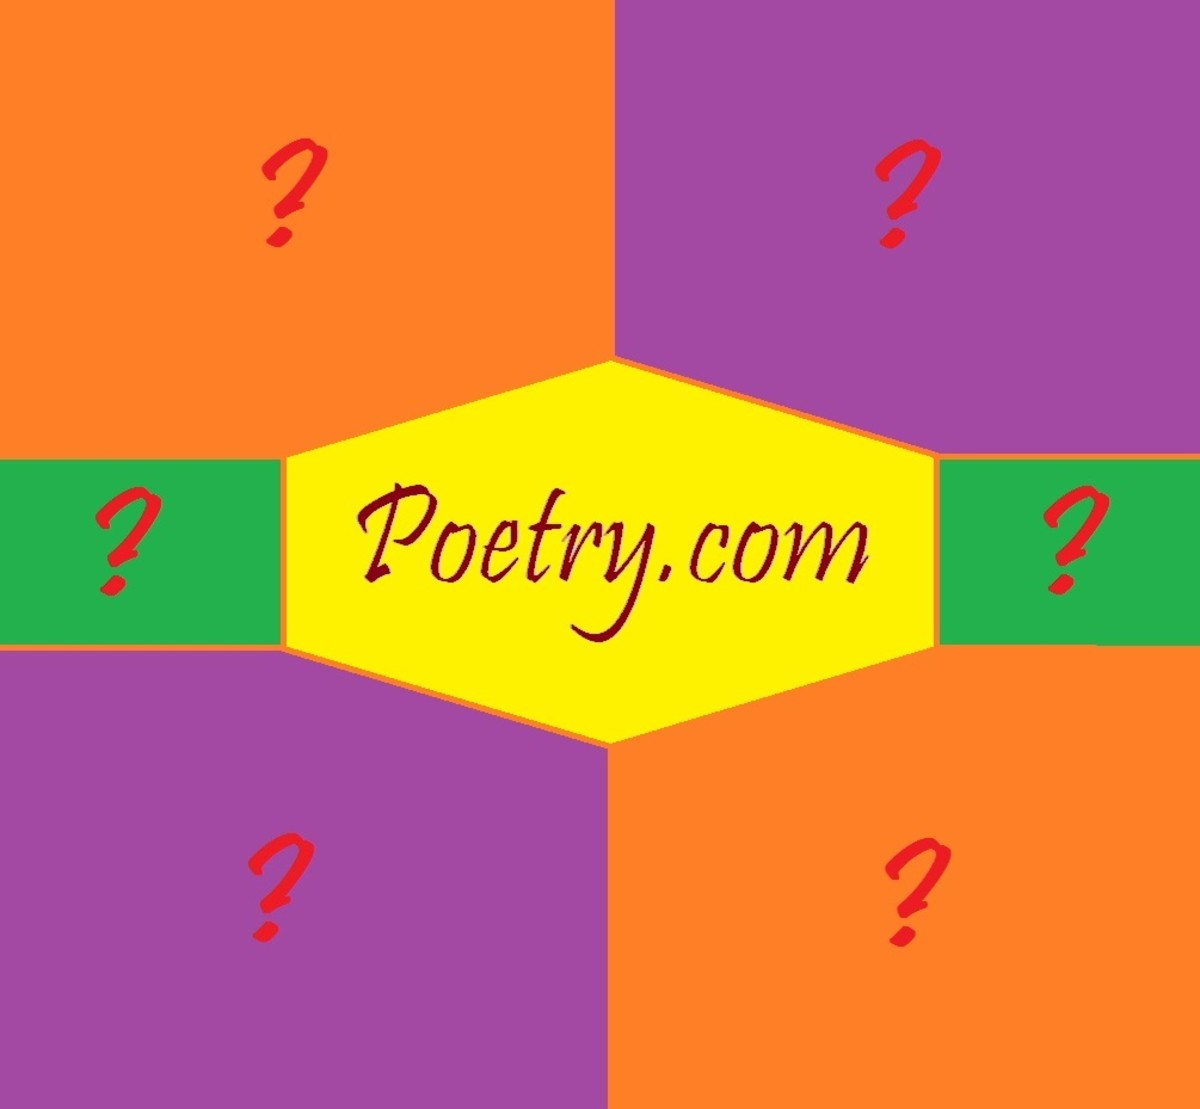 Questioning Poetry.com